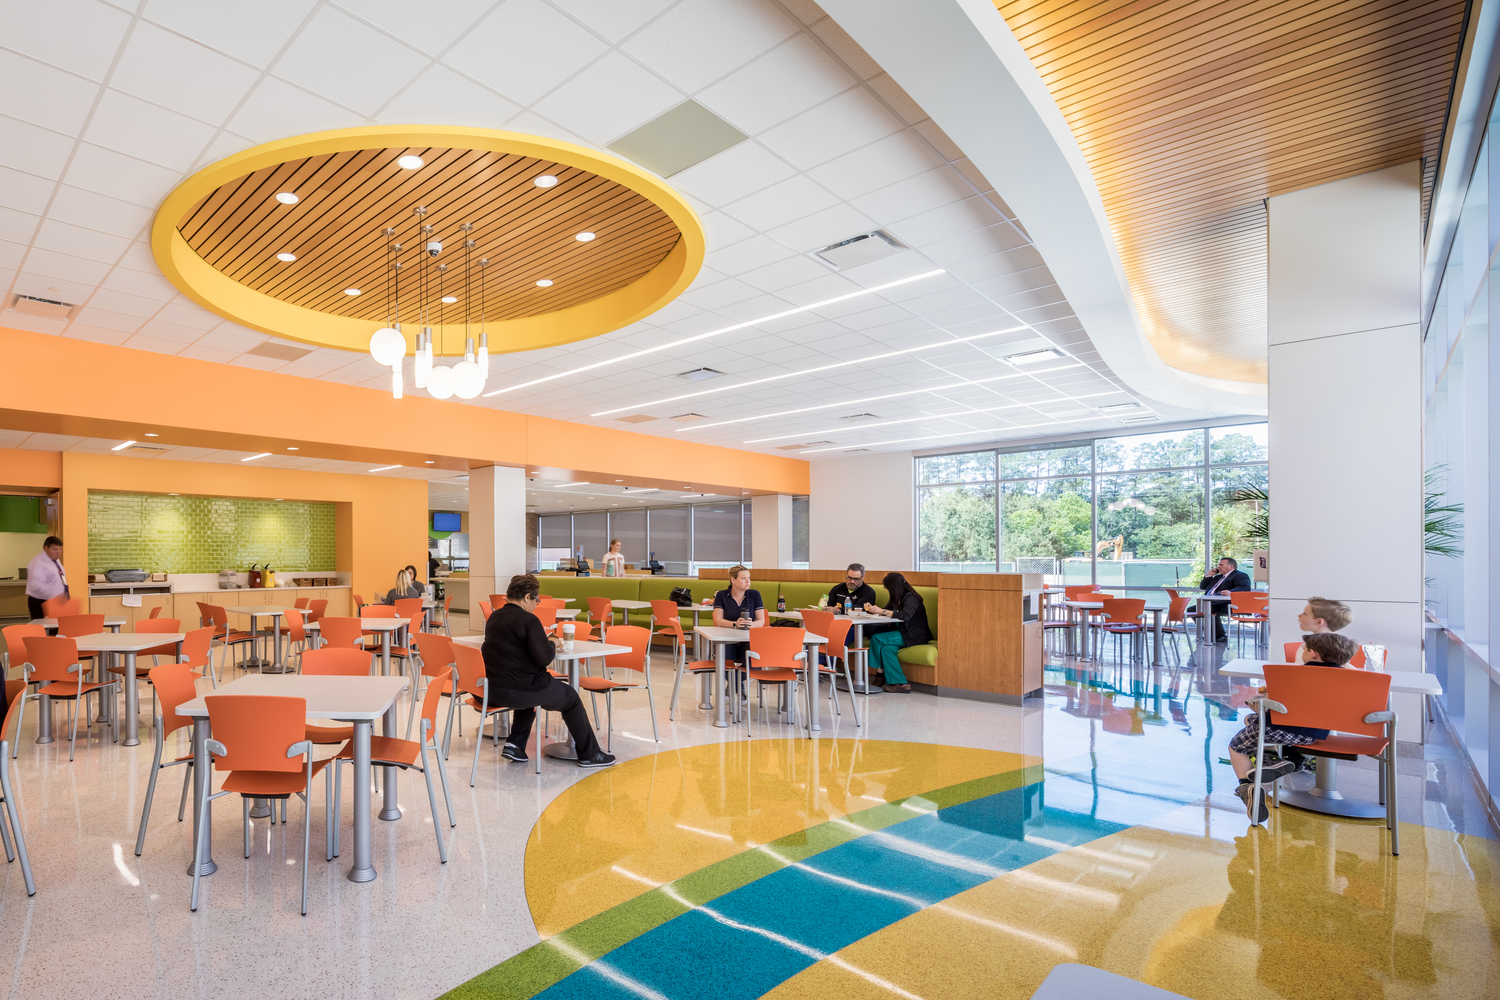 Texas Children's Hospital The Woodlands | Cannon Design